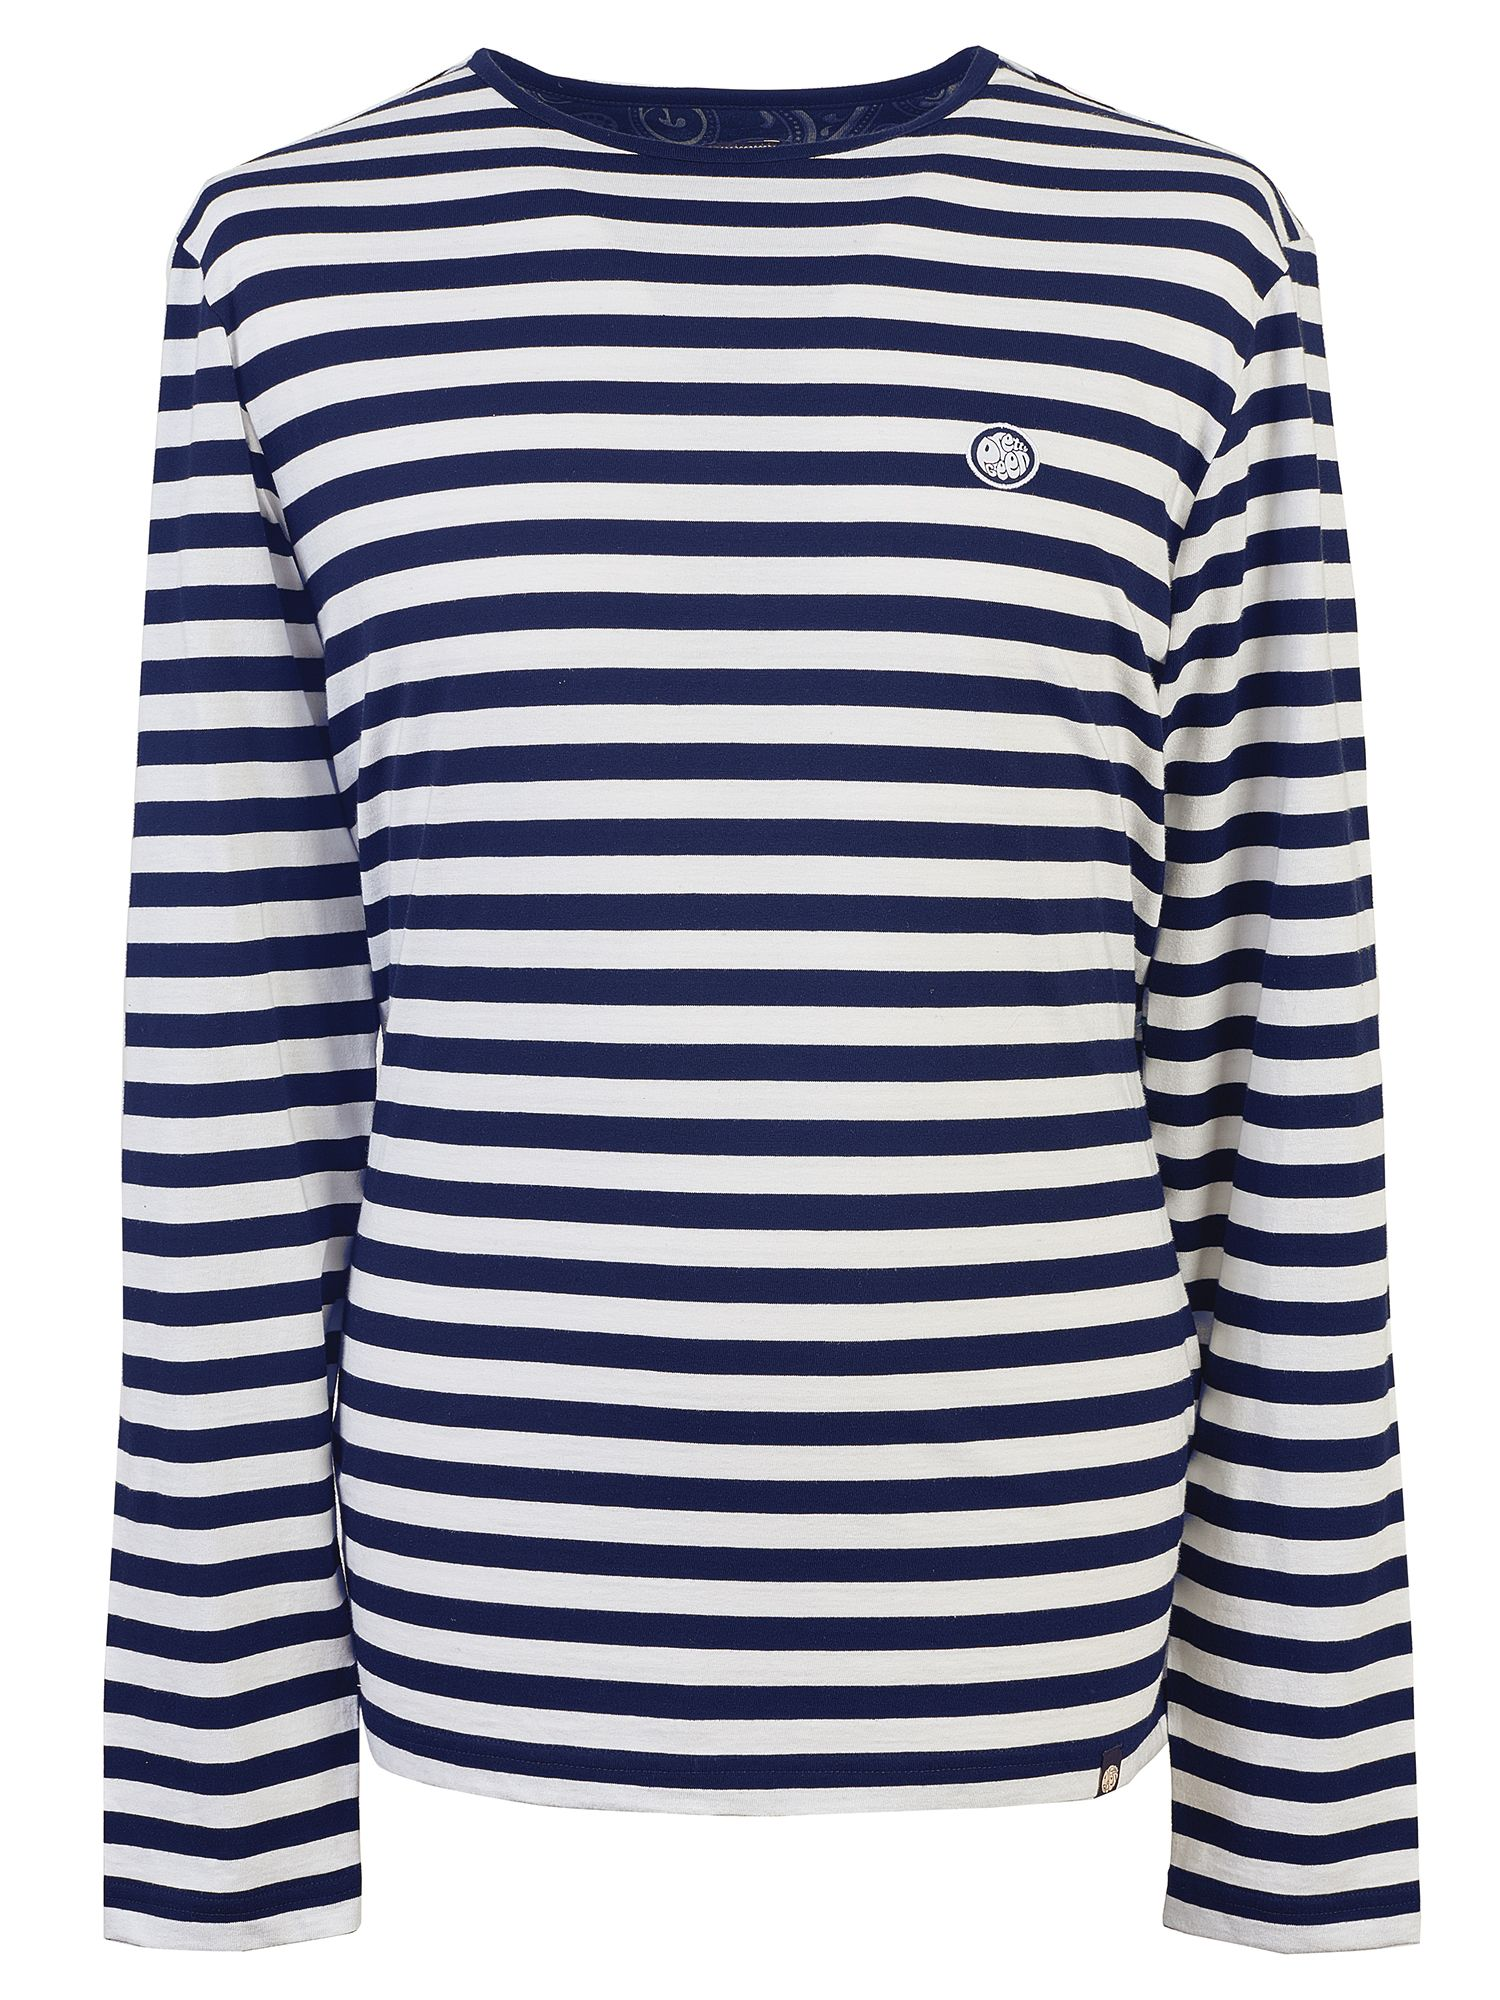 Men's Pretty Green Long Sleeve Striped T-Shirt, Blue